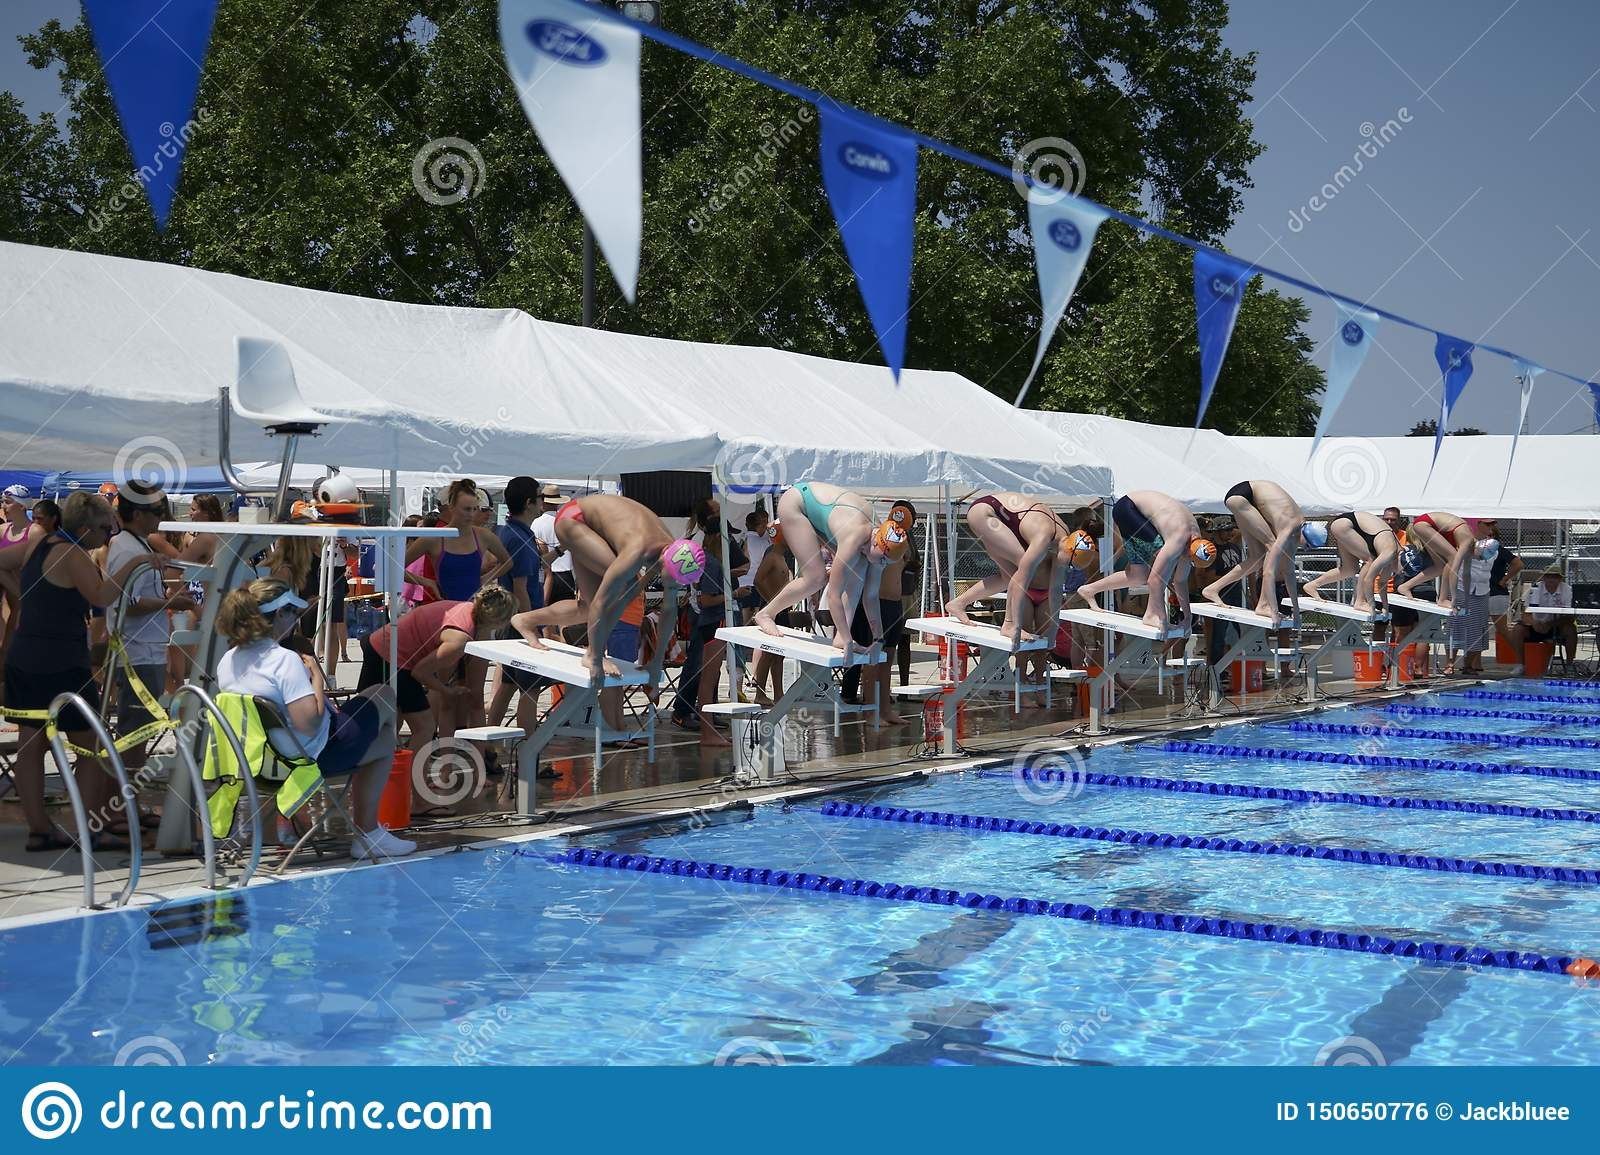 74 603 Aquatic Park Photos Free Royalty Free Stock Photos From Dreamstime